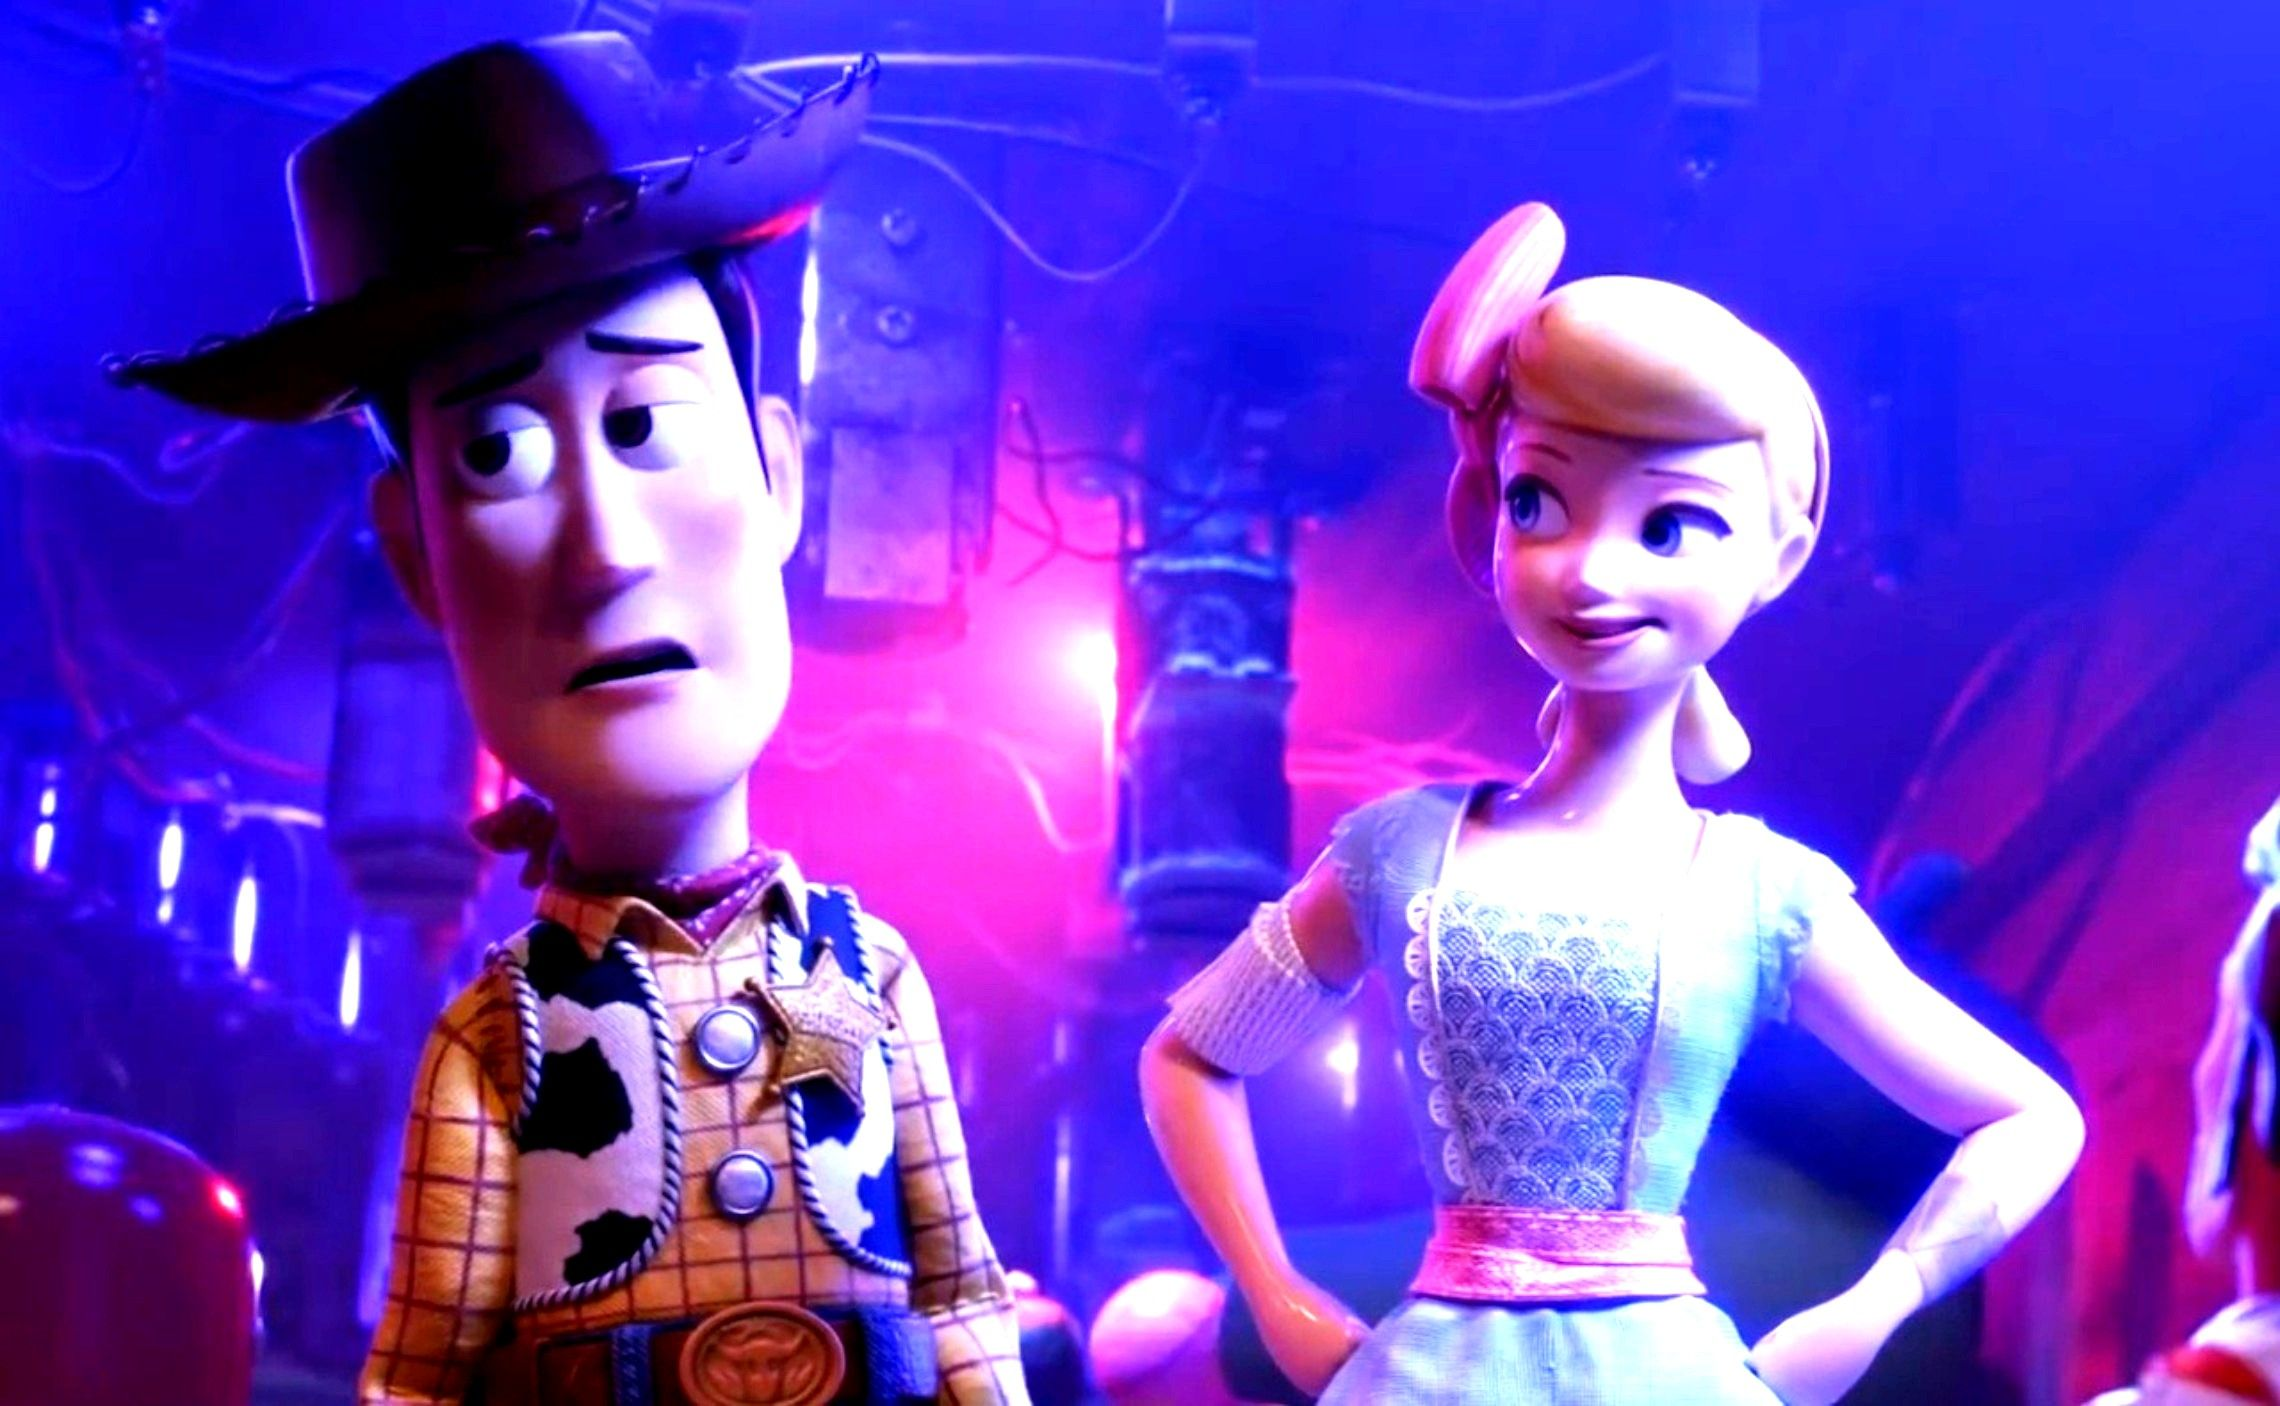 Toy Story 4 Little Bo Peep And Sheriff Woody Pride Bo Peep Toy Story Toy Story Sheriff Woody Pride